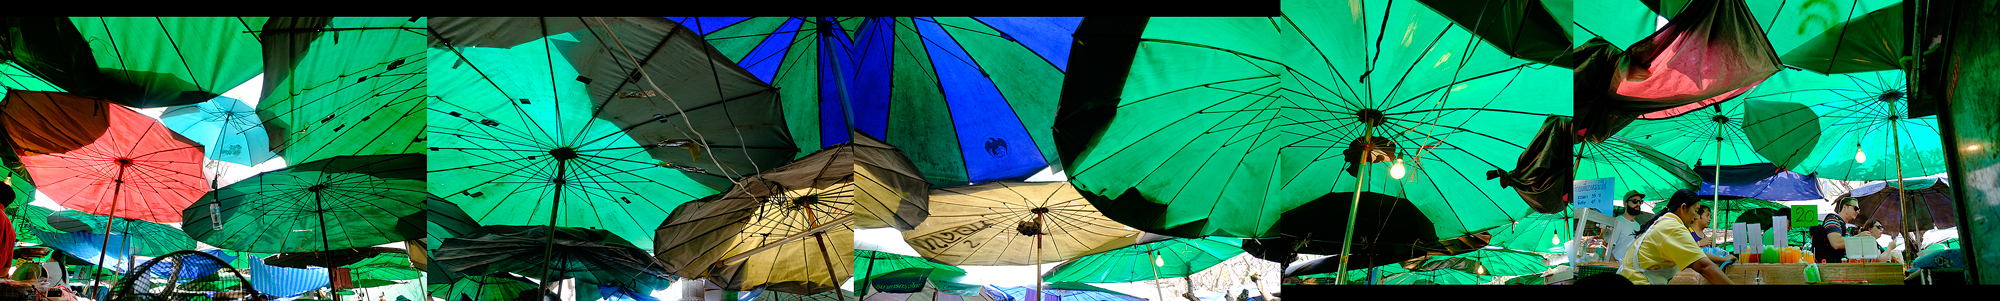 Sea Of Umbrellas, Jan 2, 2015.